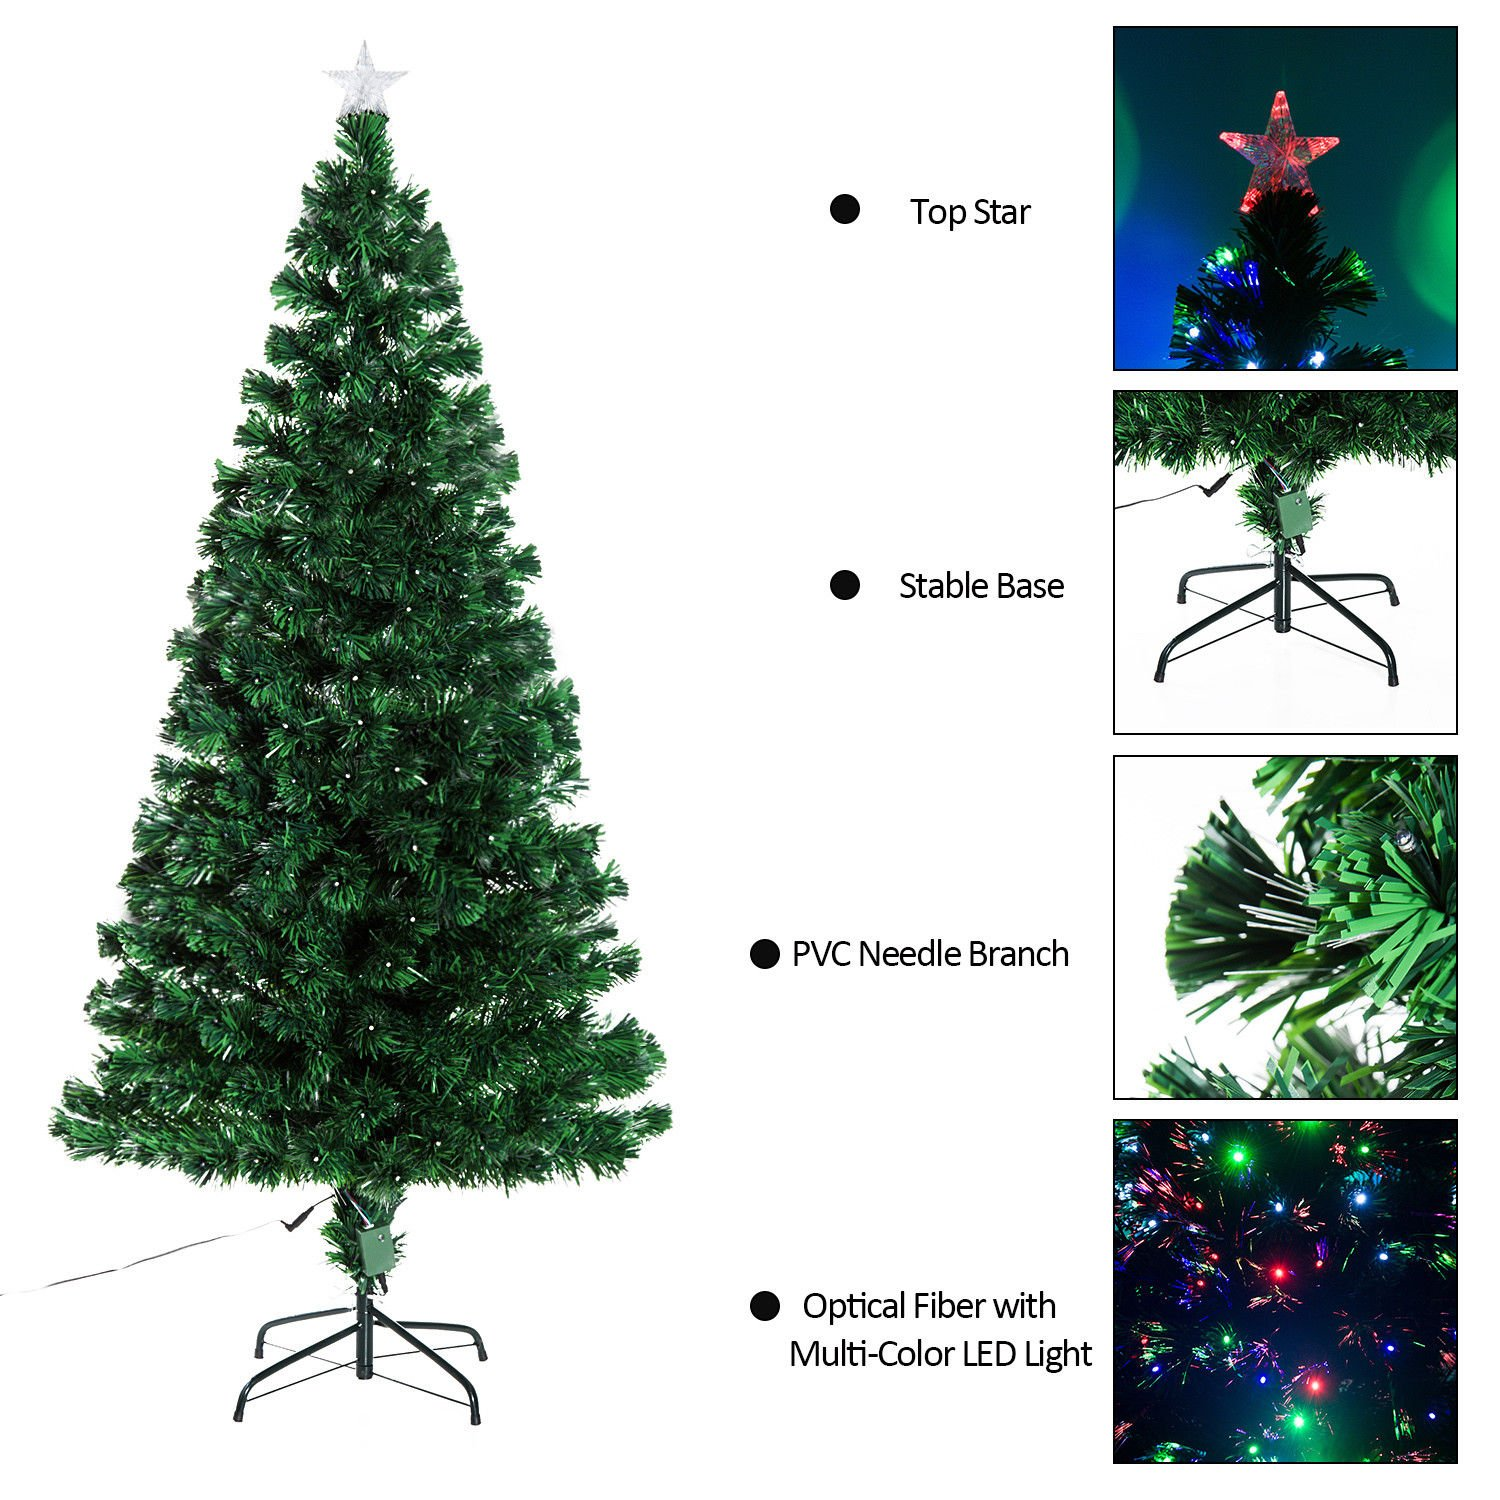 Amazon.com: HOMCOM 7\' Tall Pre-Lit Artificial Fiber Optic LED Lit ...